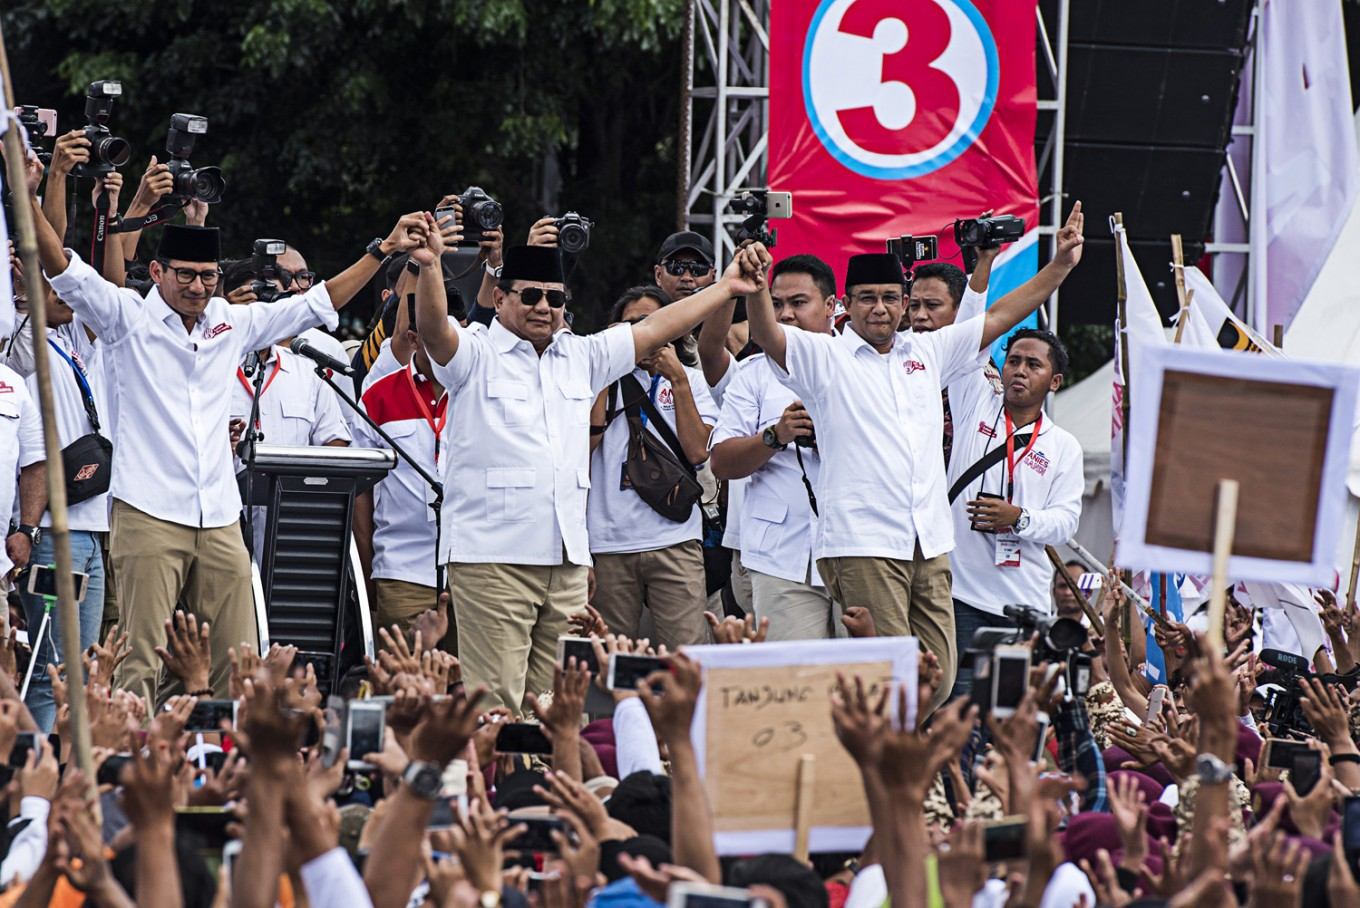 Anies beats Ahok in runoff vote: Quick counts